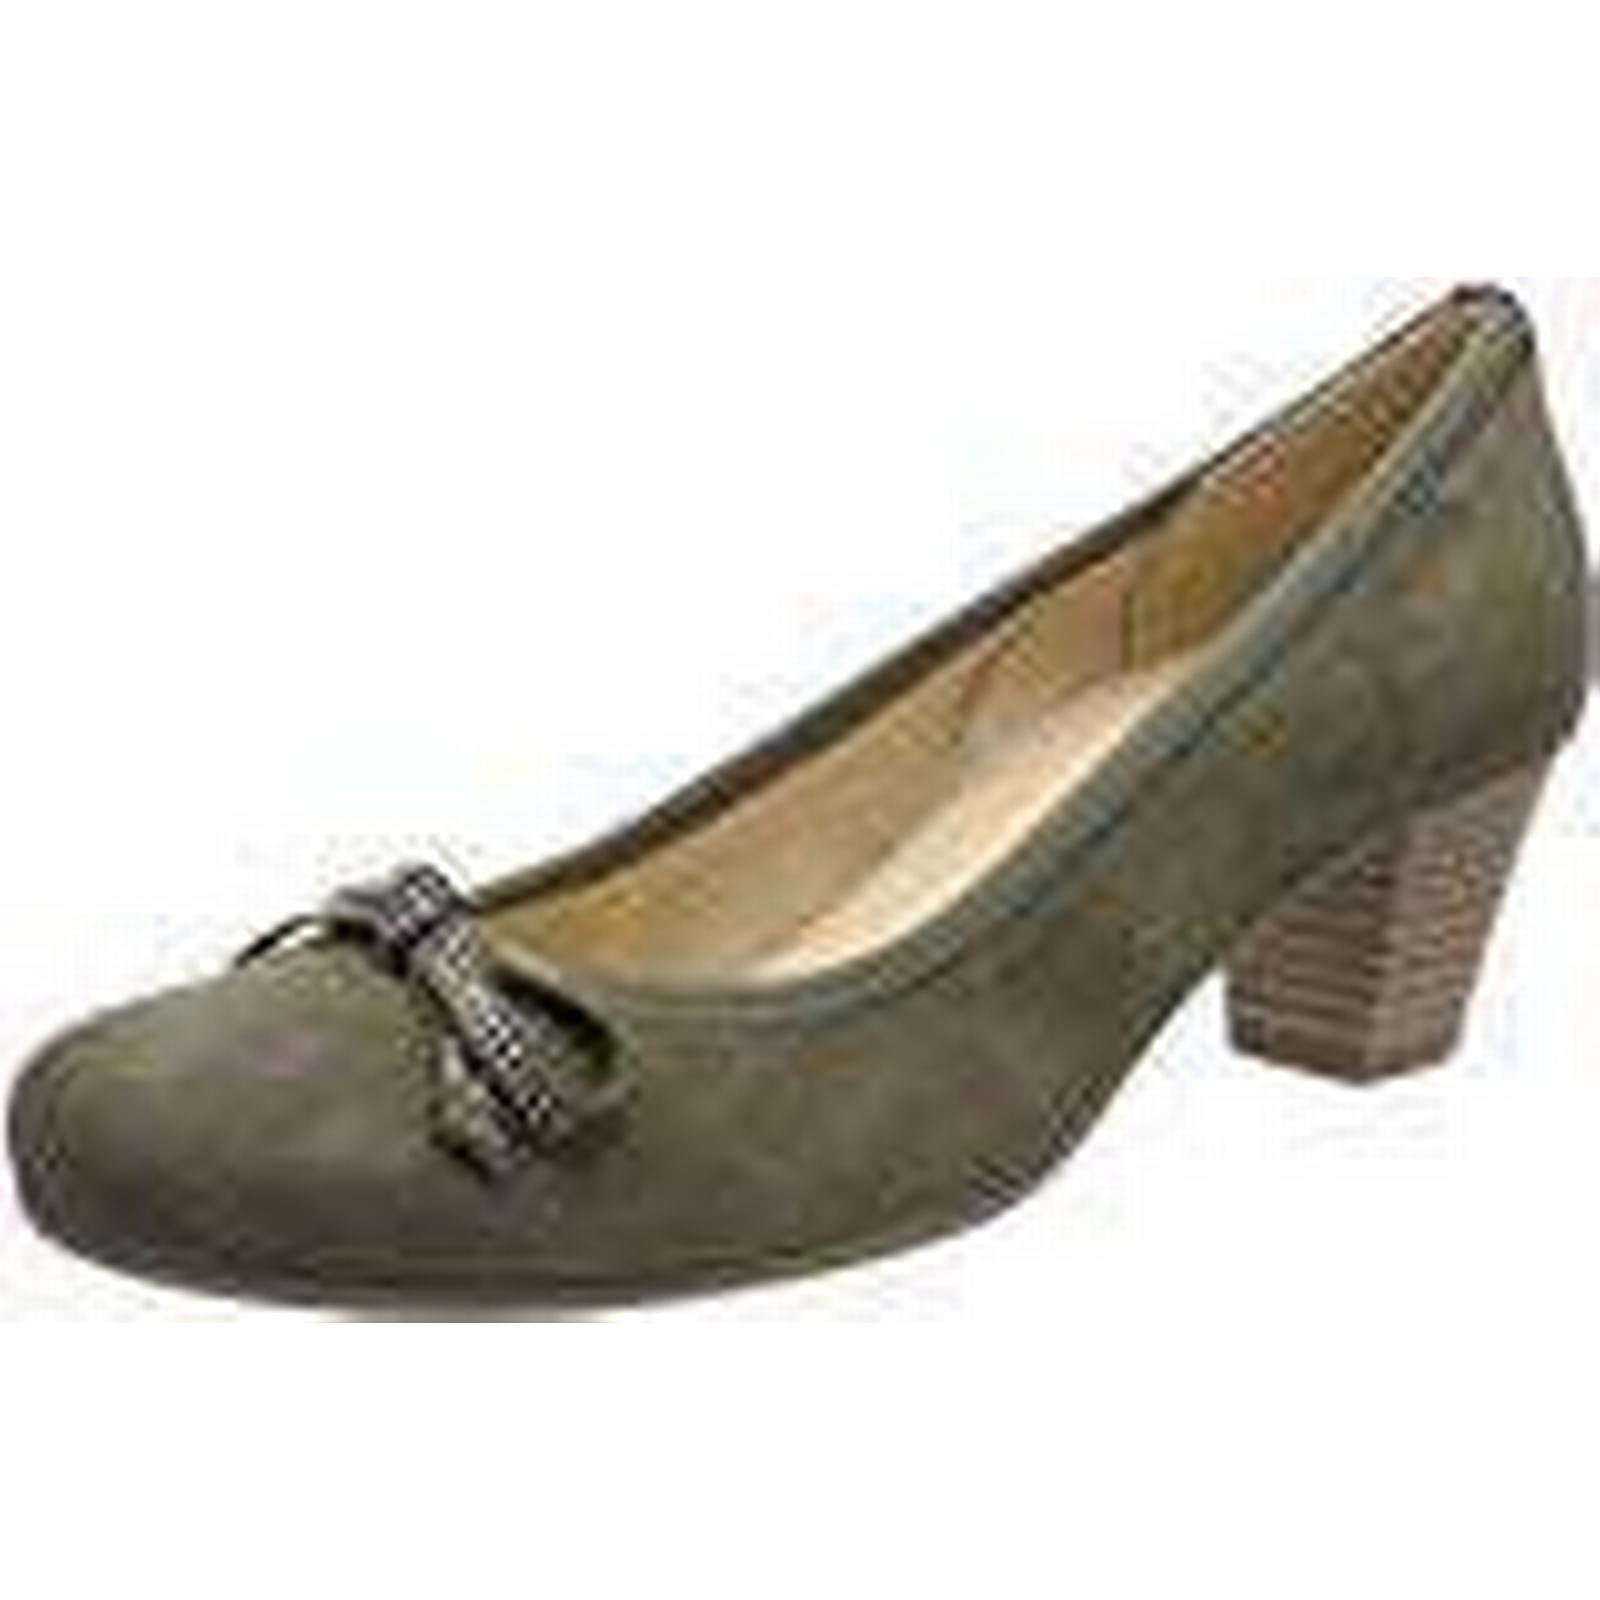 Gabor Shoes Women''s (Oliv), Basic Closed-Toe Pumps, Green (Oliv), Women''s 5 UK 2b2c6d